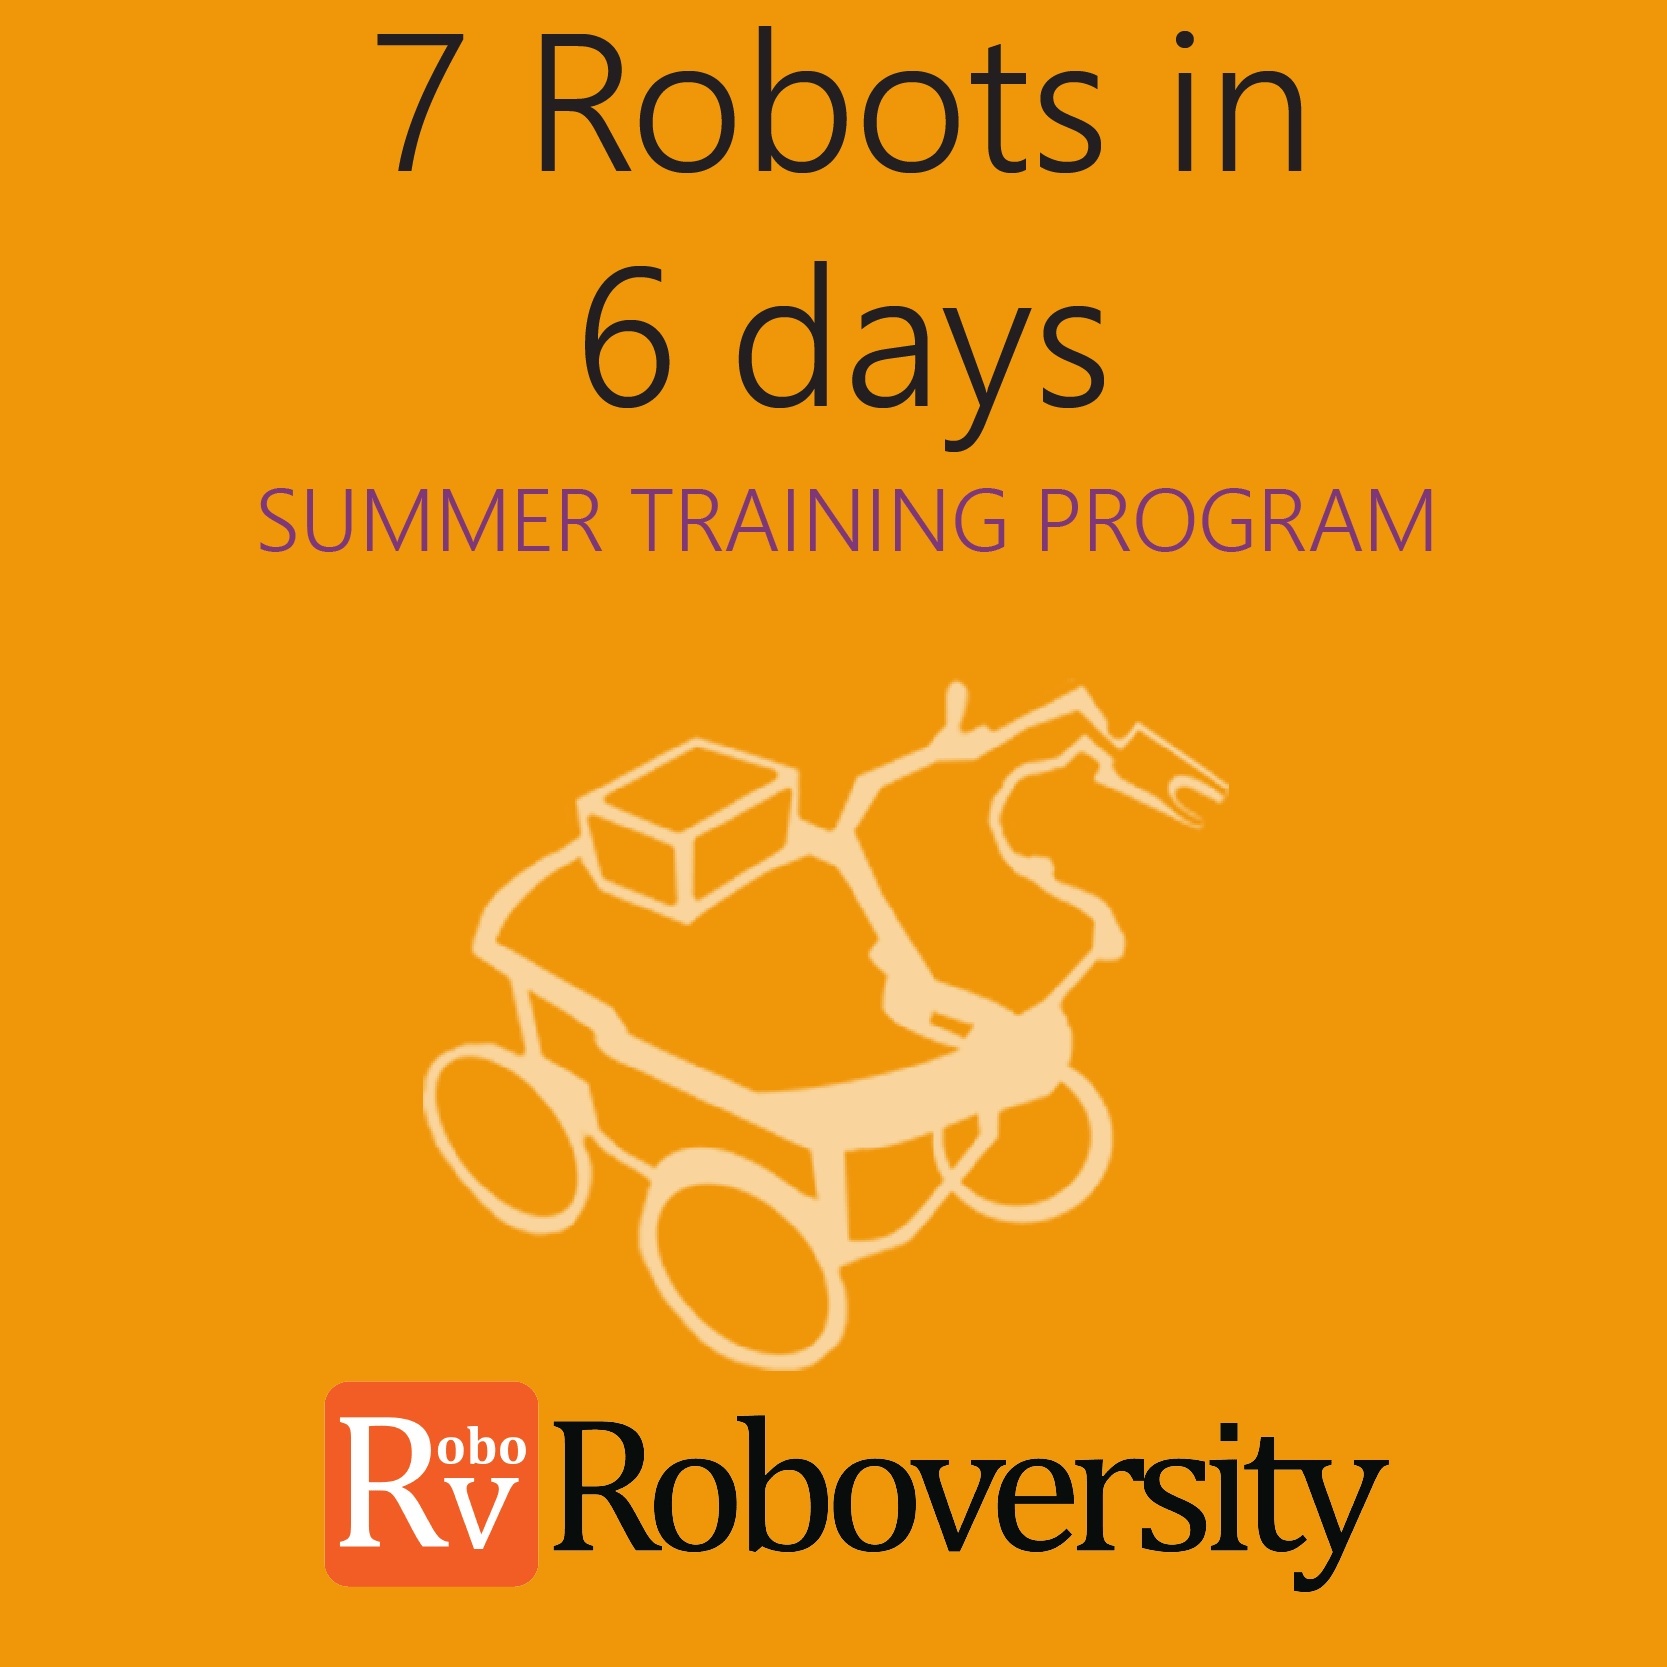 Summer Training Program on 7 Robots in 6 Days  at Skyfi Labs Center, Jejurkar Classes, Dadar West Workshop